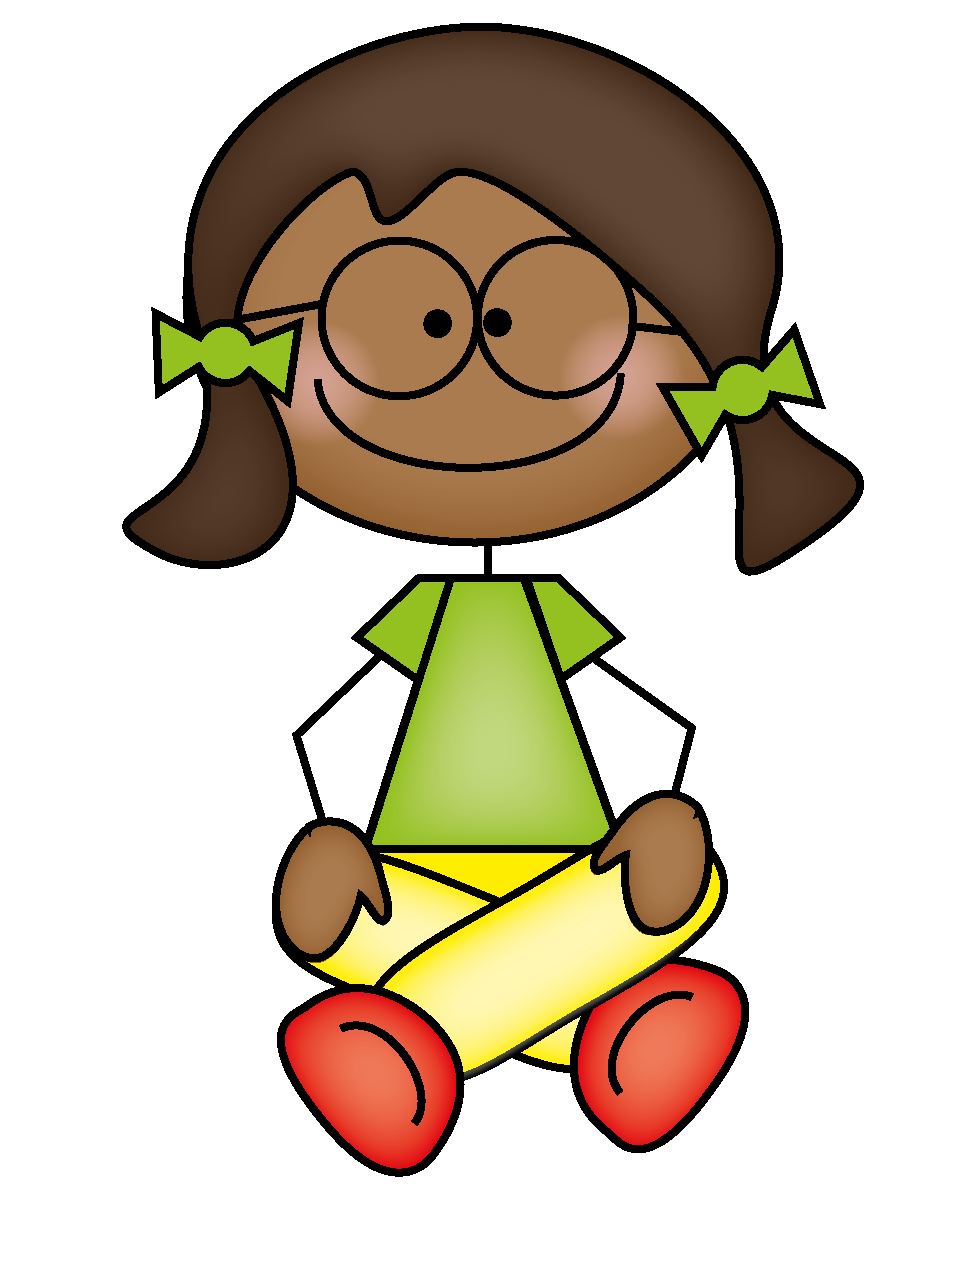 Student sitting quietly clipart.